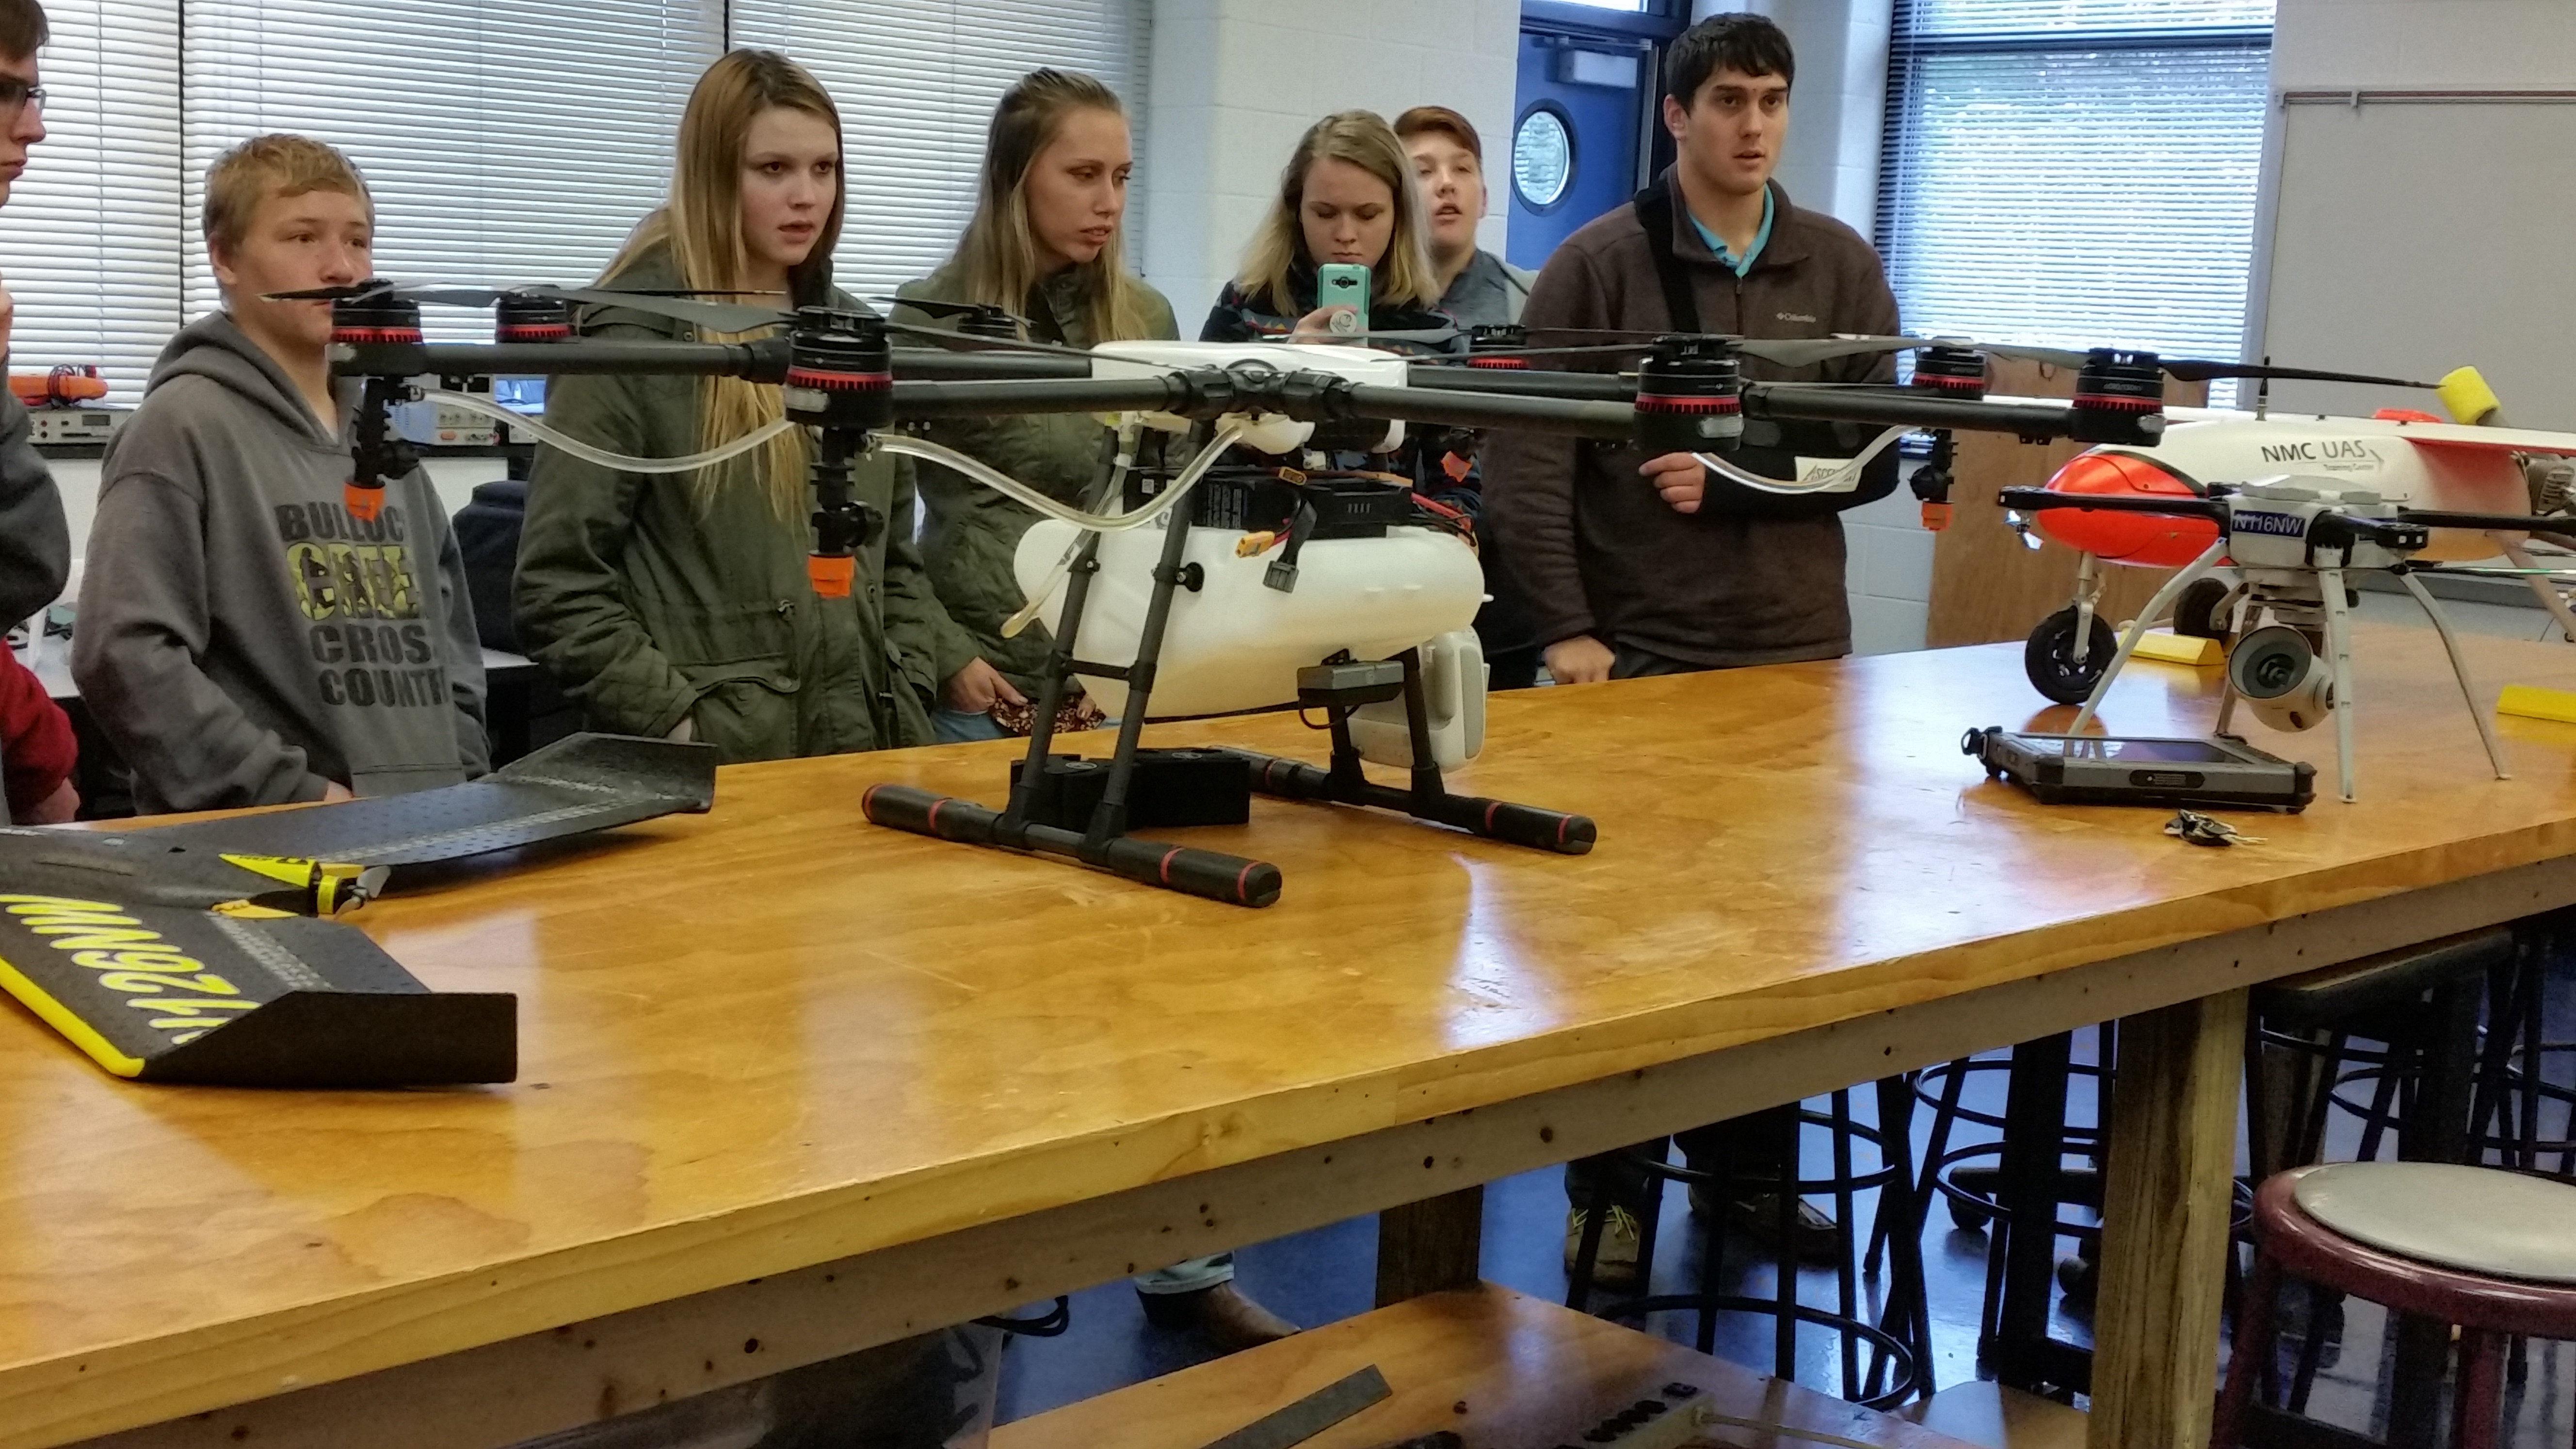 Viewing drone laboratory at Northwestern Michigan College